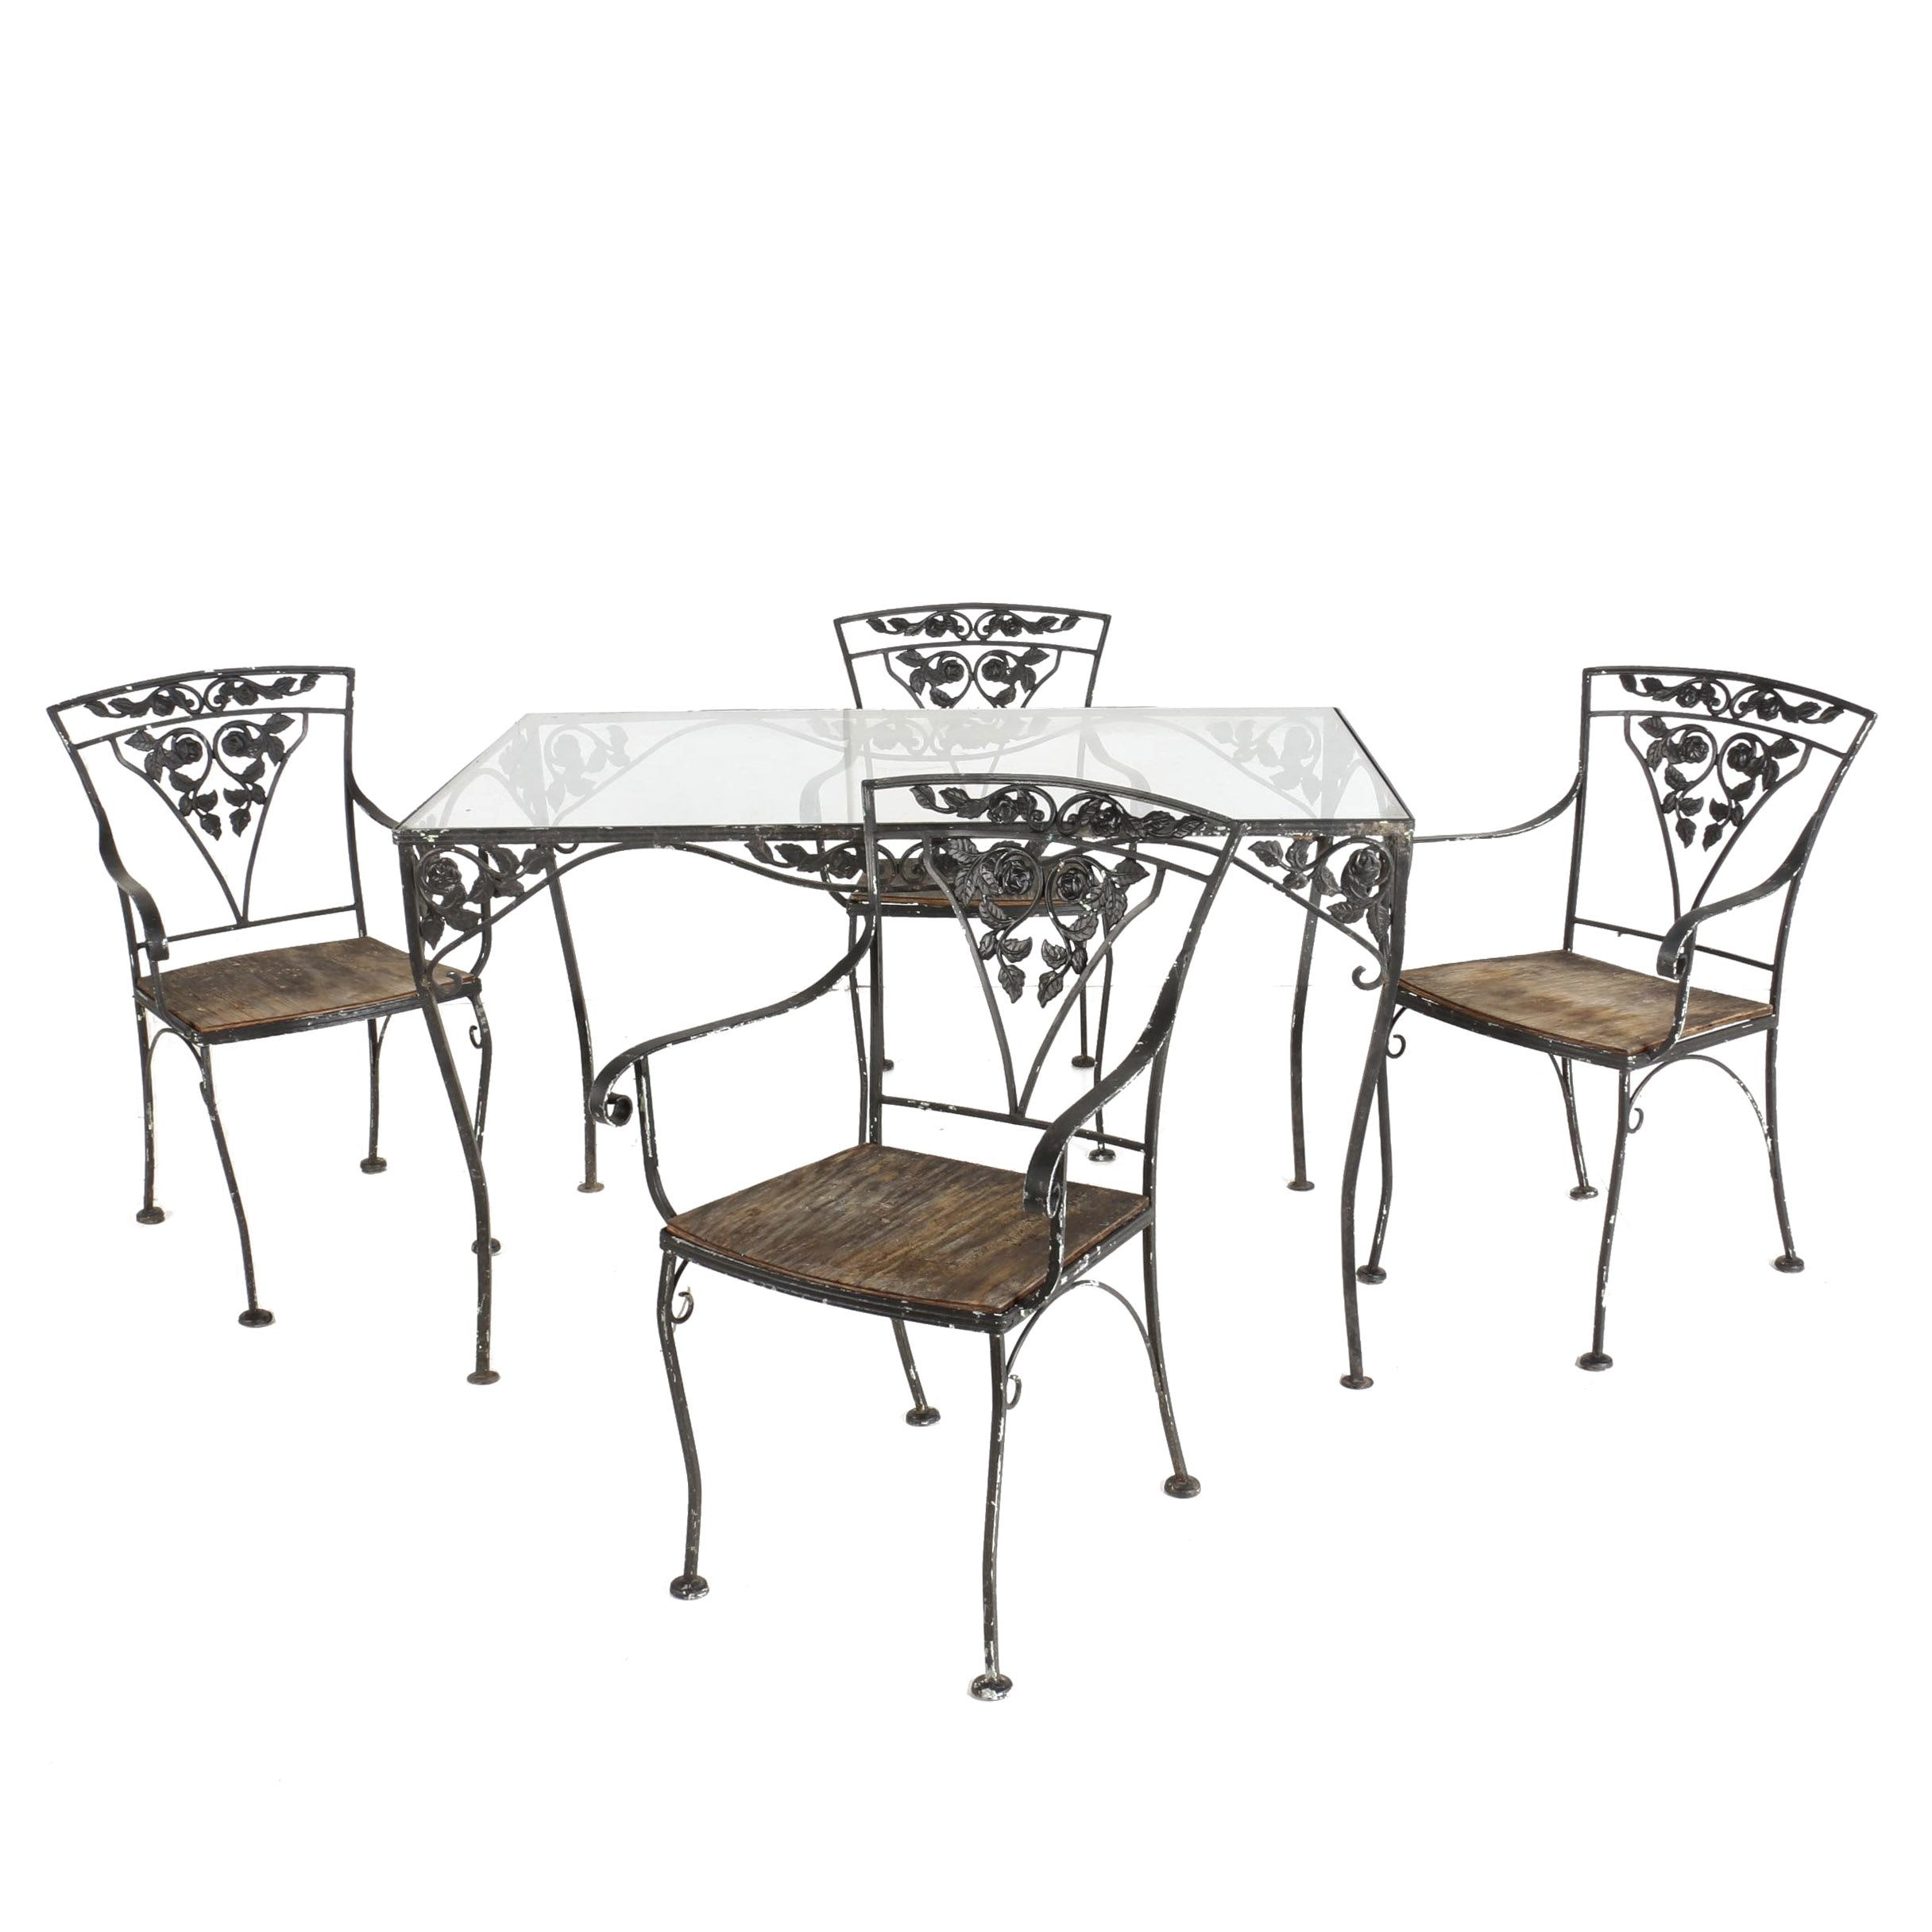 Metal Patio Table And Chairs, Mid to Late 20th Century